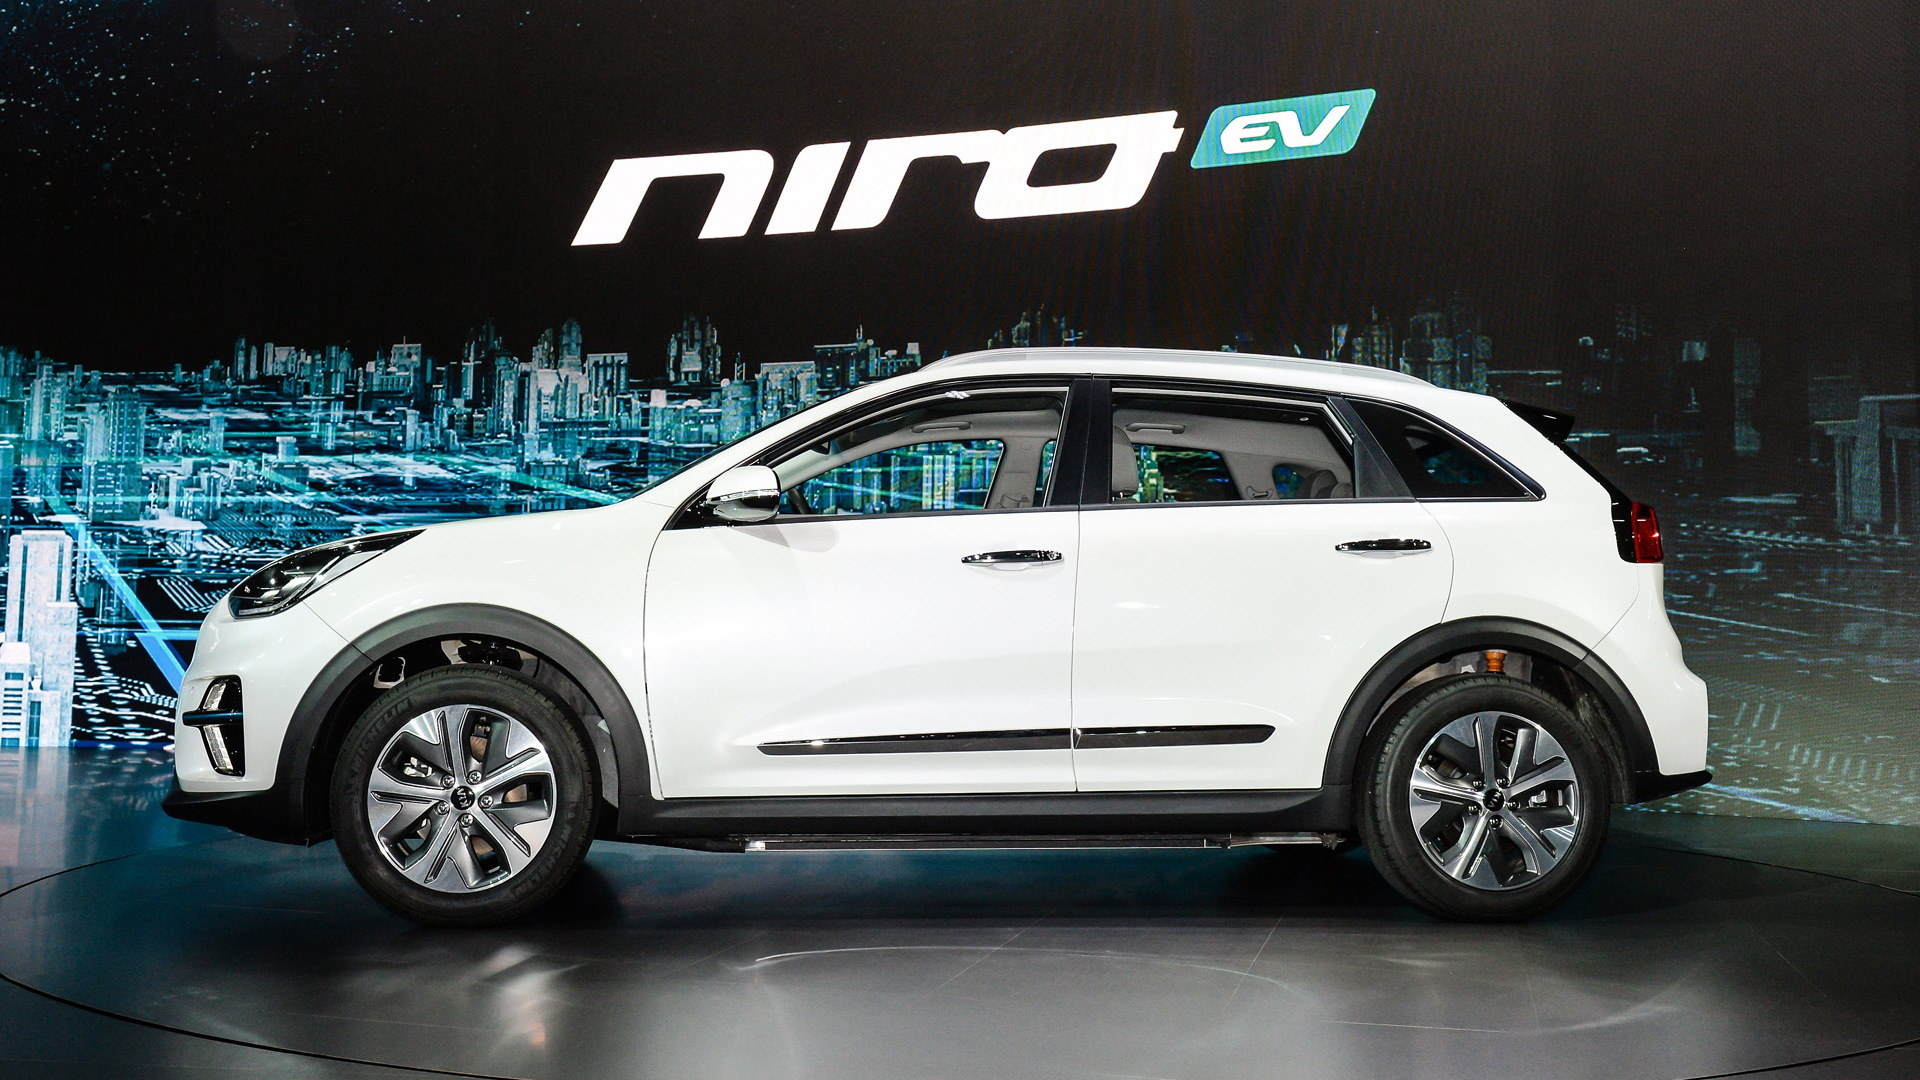 2019 Kia Niro Ev Debuts With 210 Horsepower 280 Miles Of Range